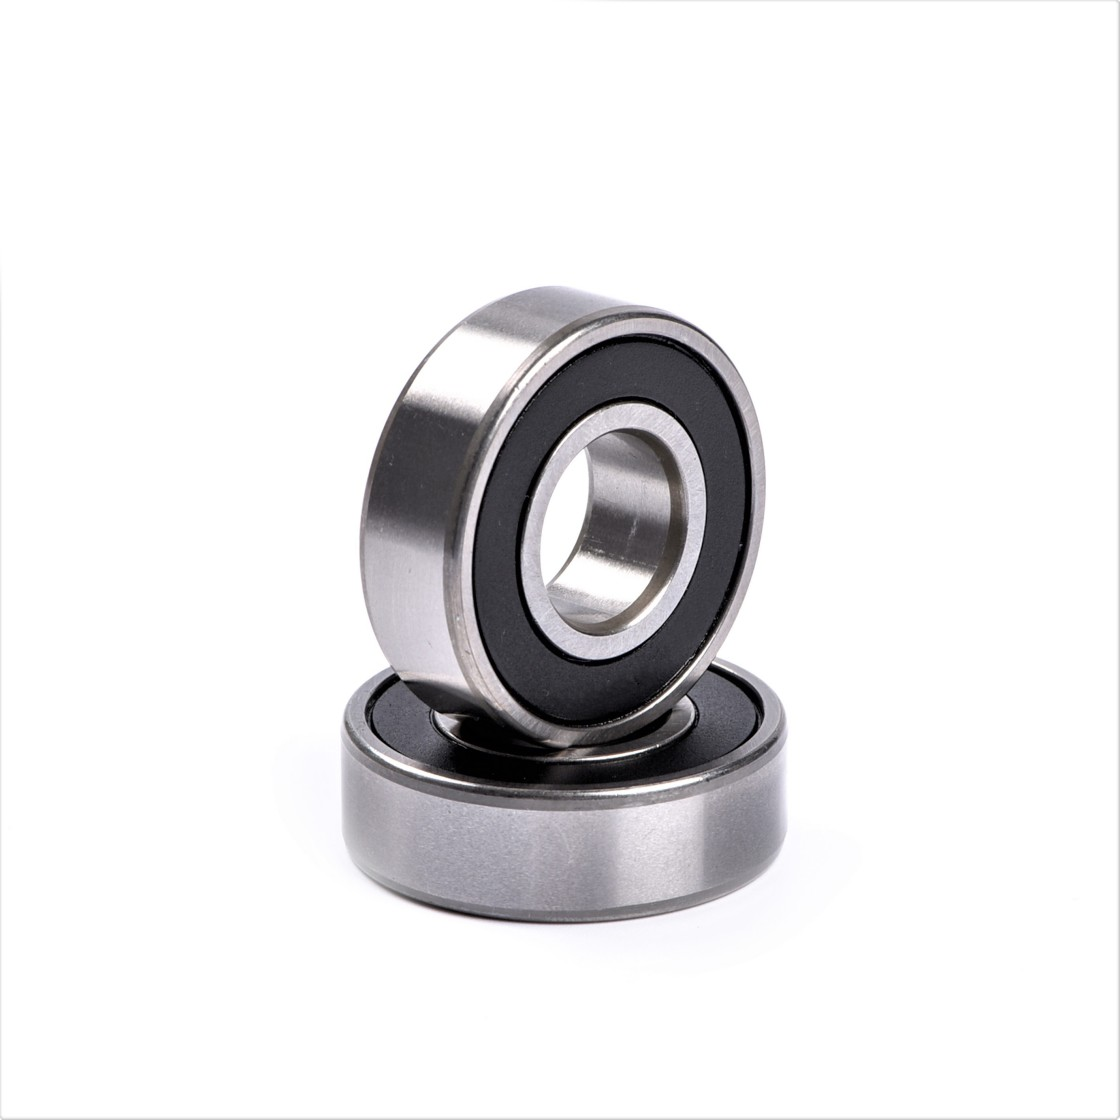 55 mm x 120 mm x 29 mm  FAG 1311-K-TVH-C3 Self aligning ball bearing